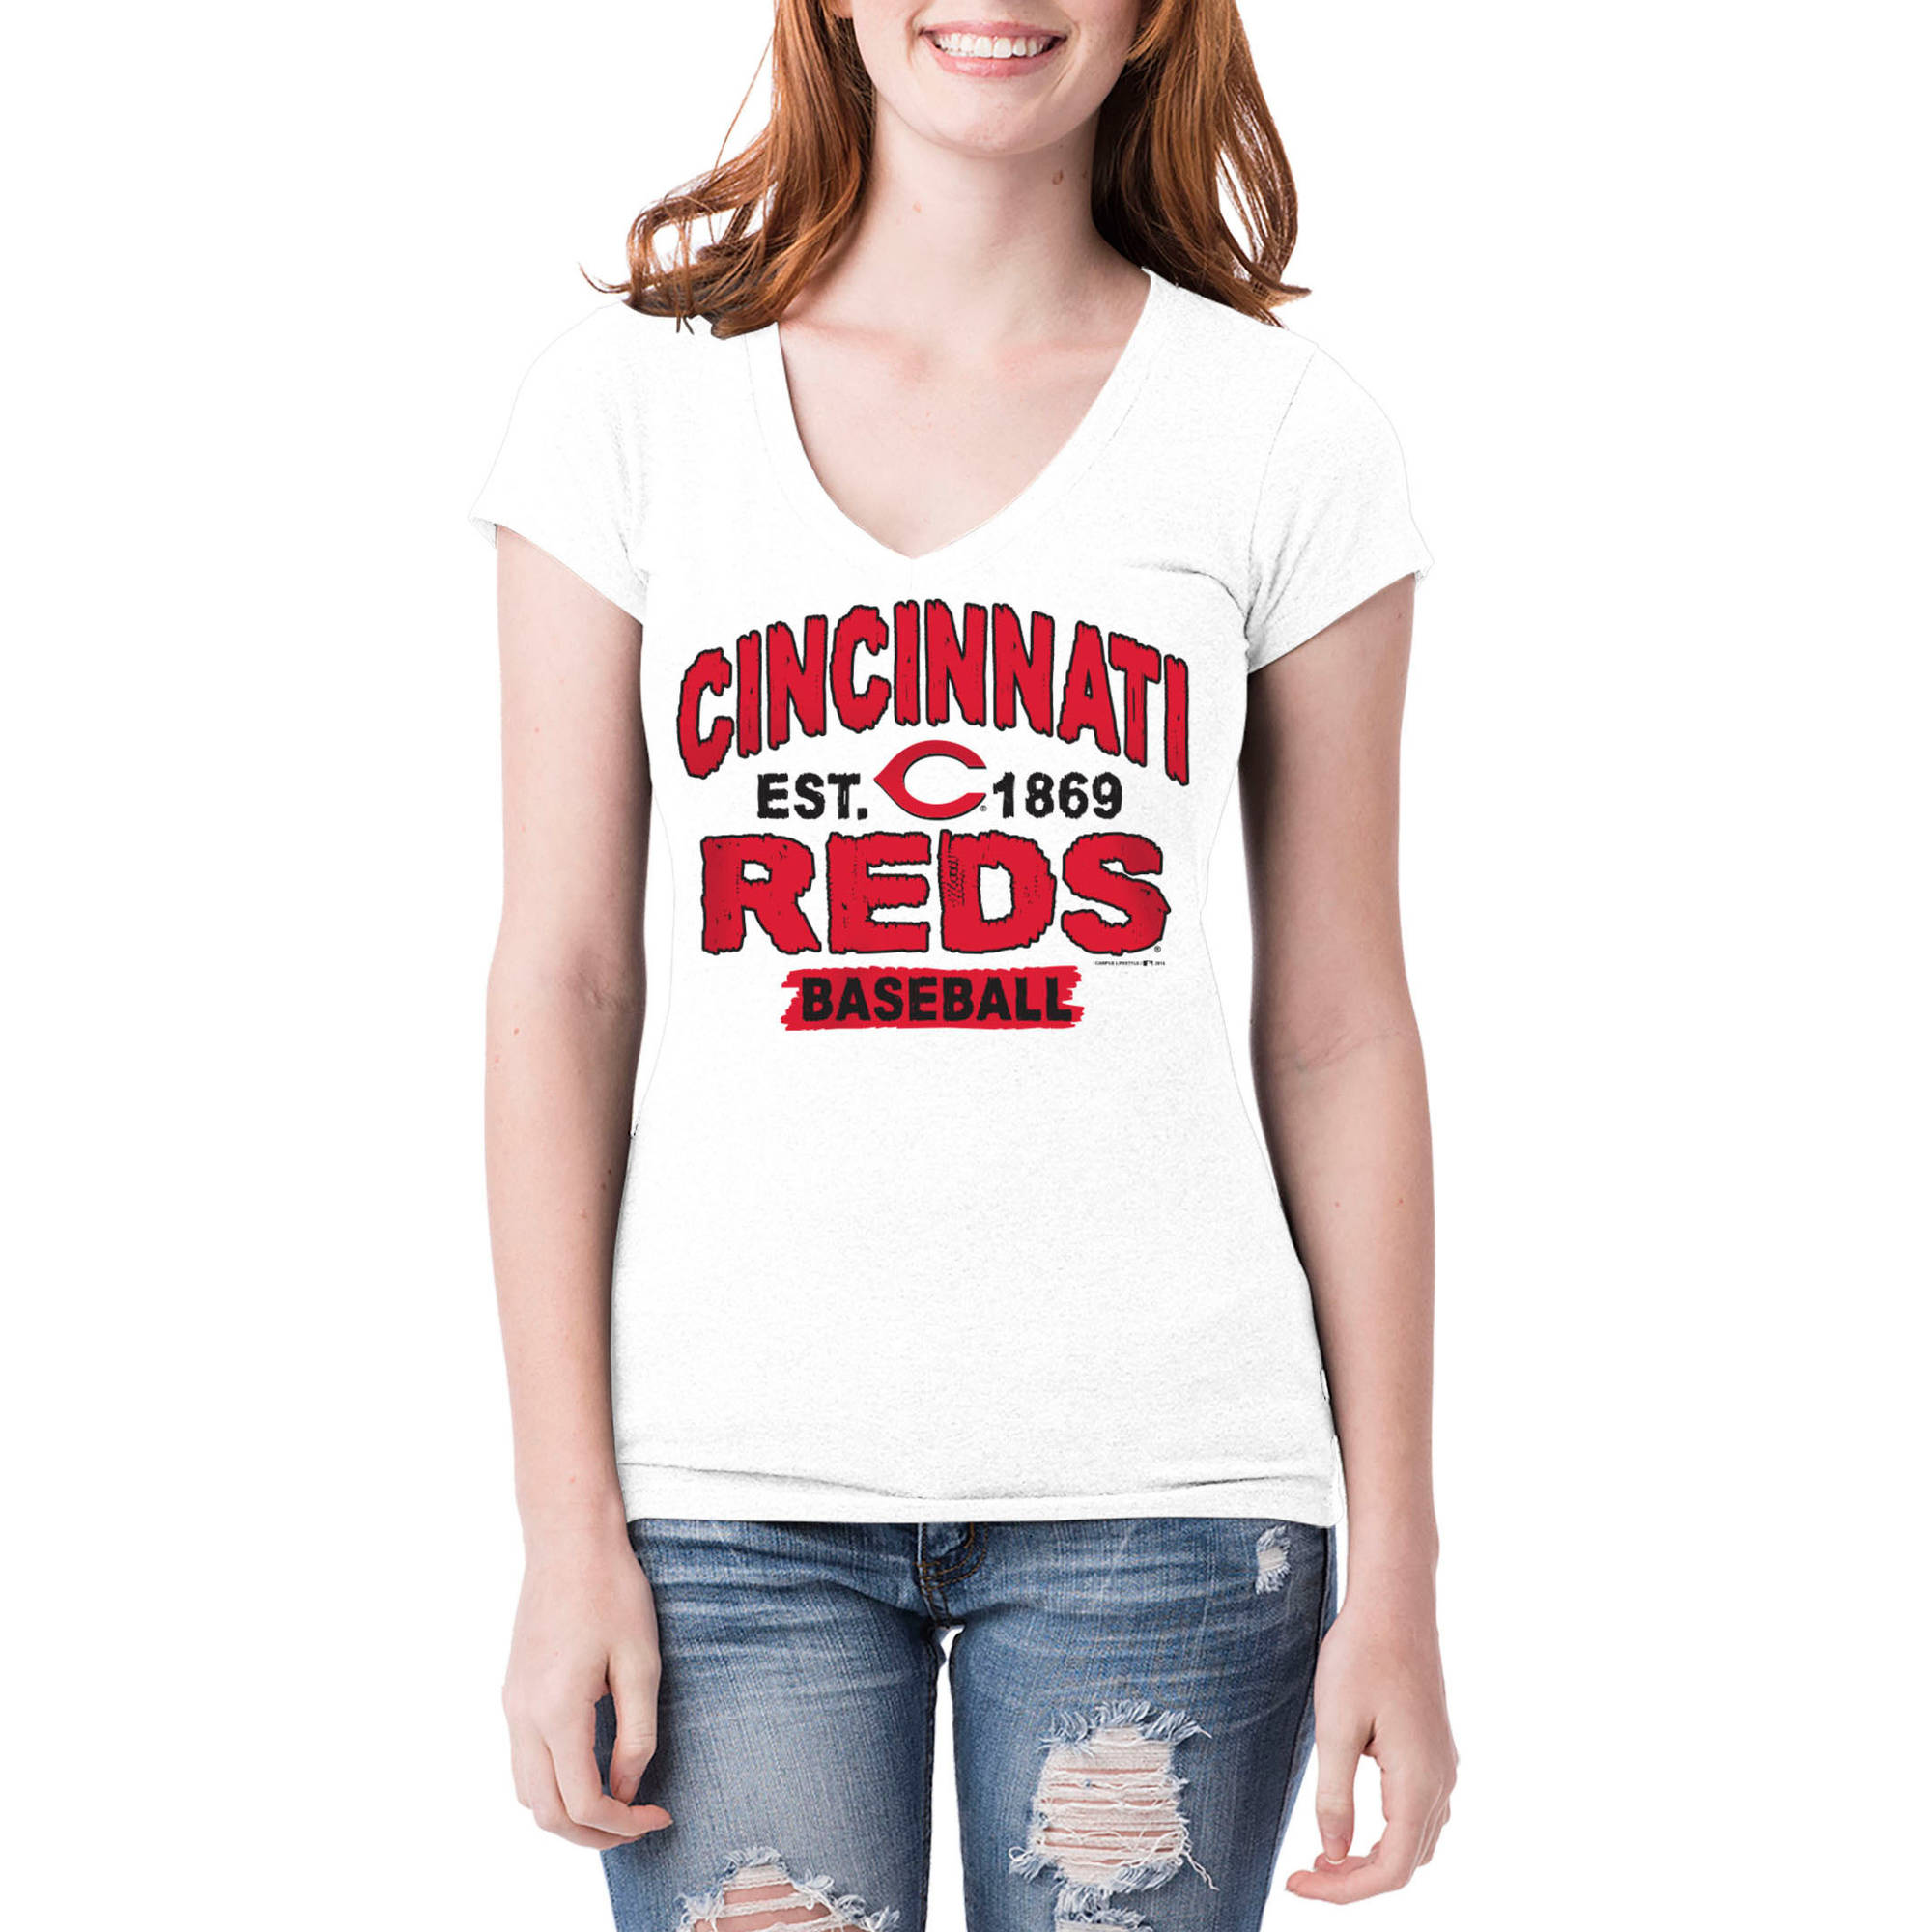 Cincinnati Reds Womens Short Sleeve White Graphic Tee